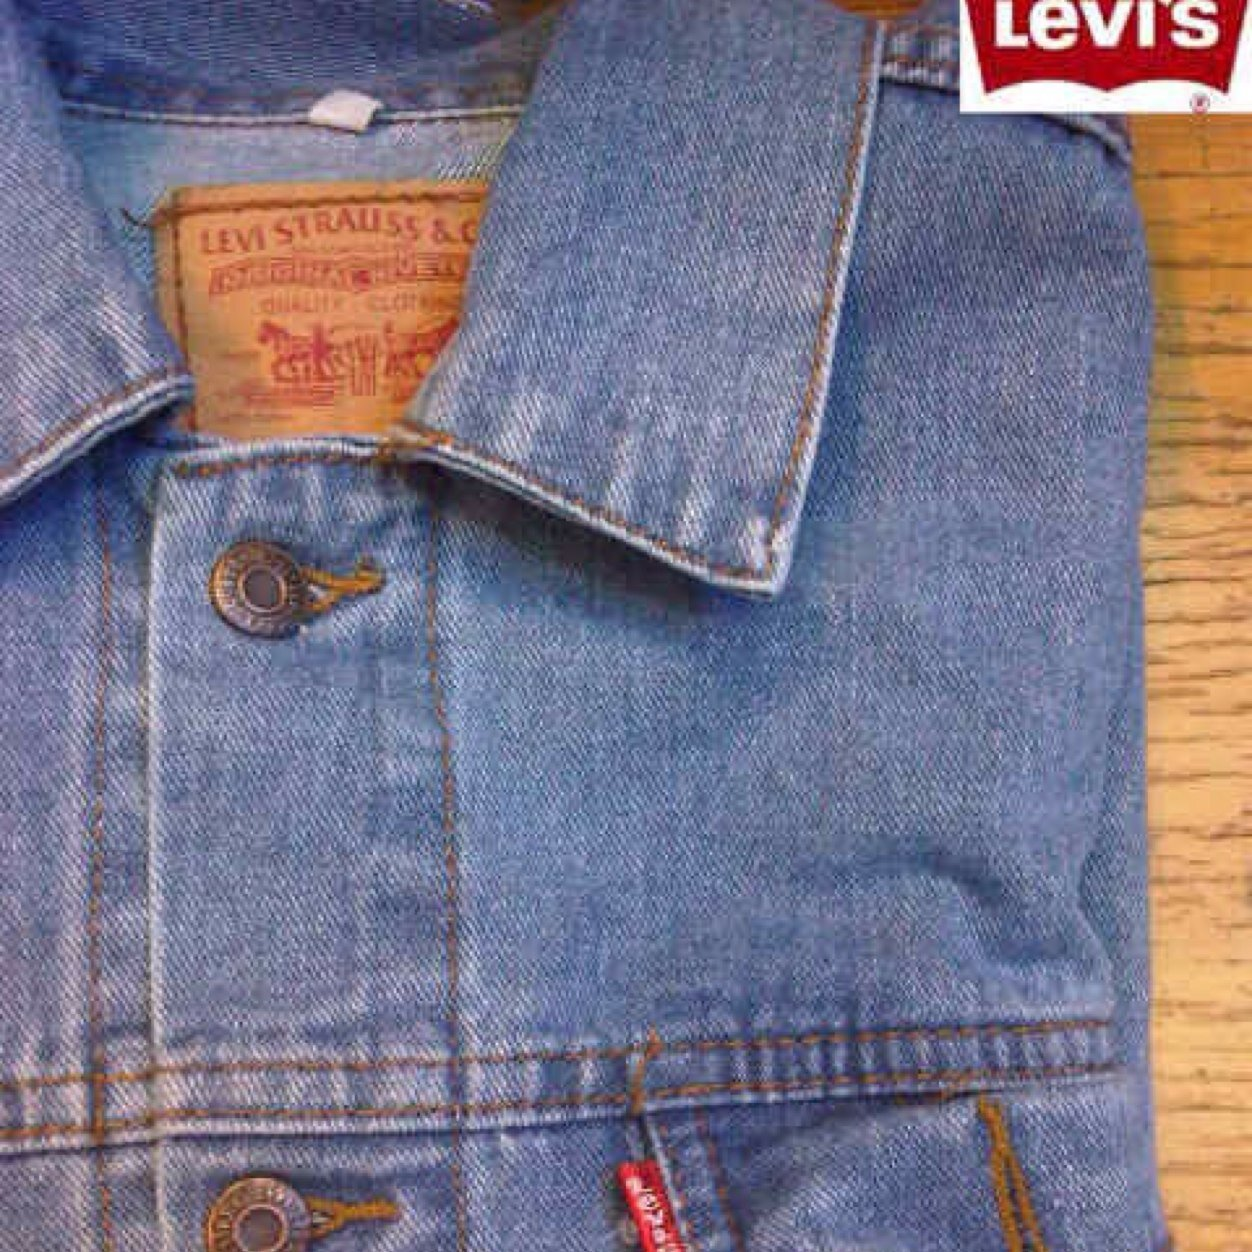 Jeans Malang on Twitter